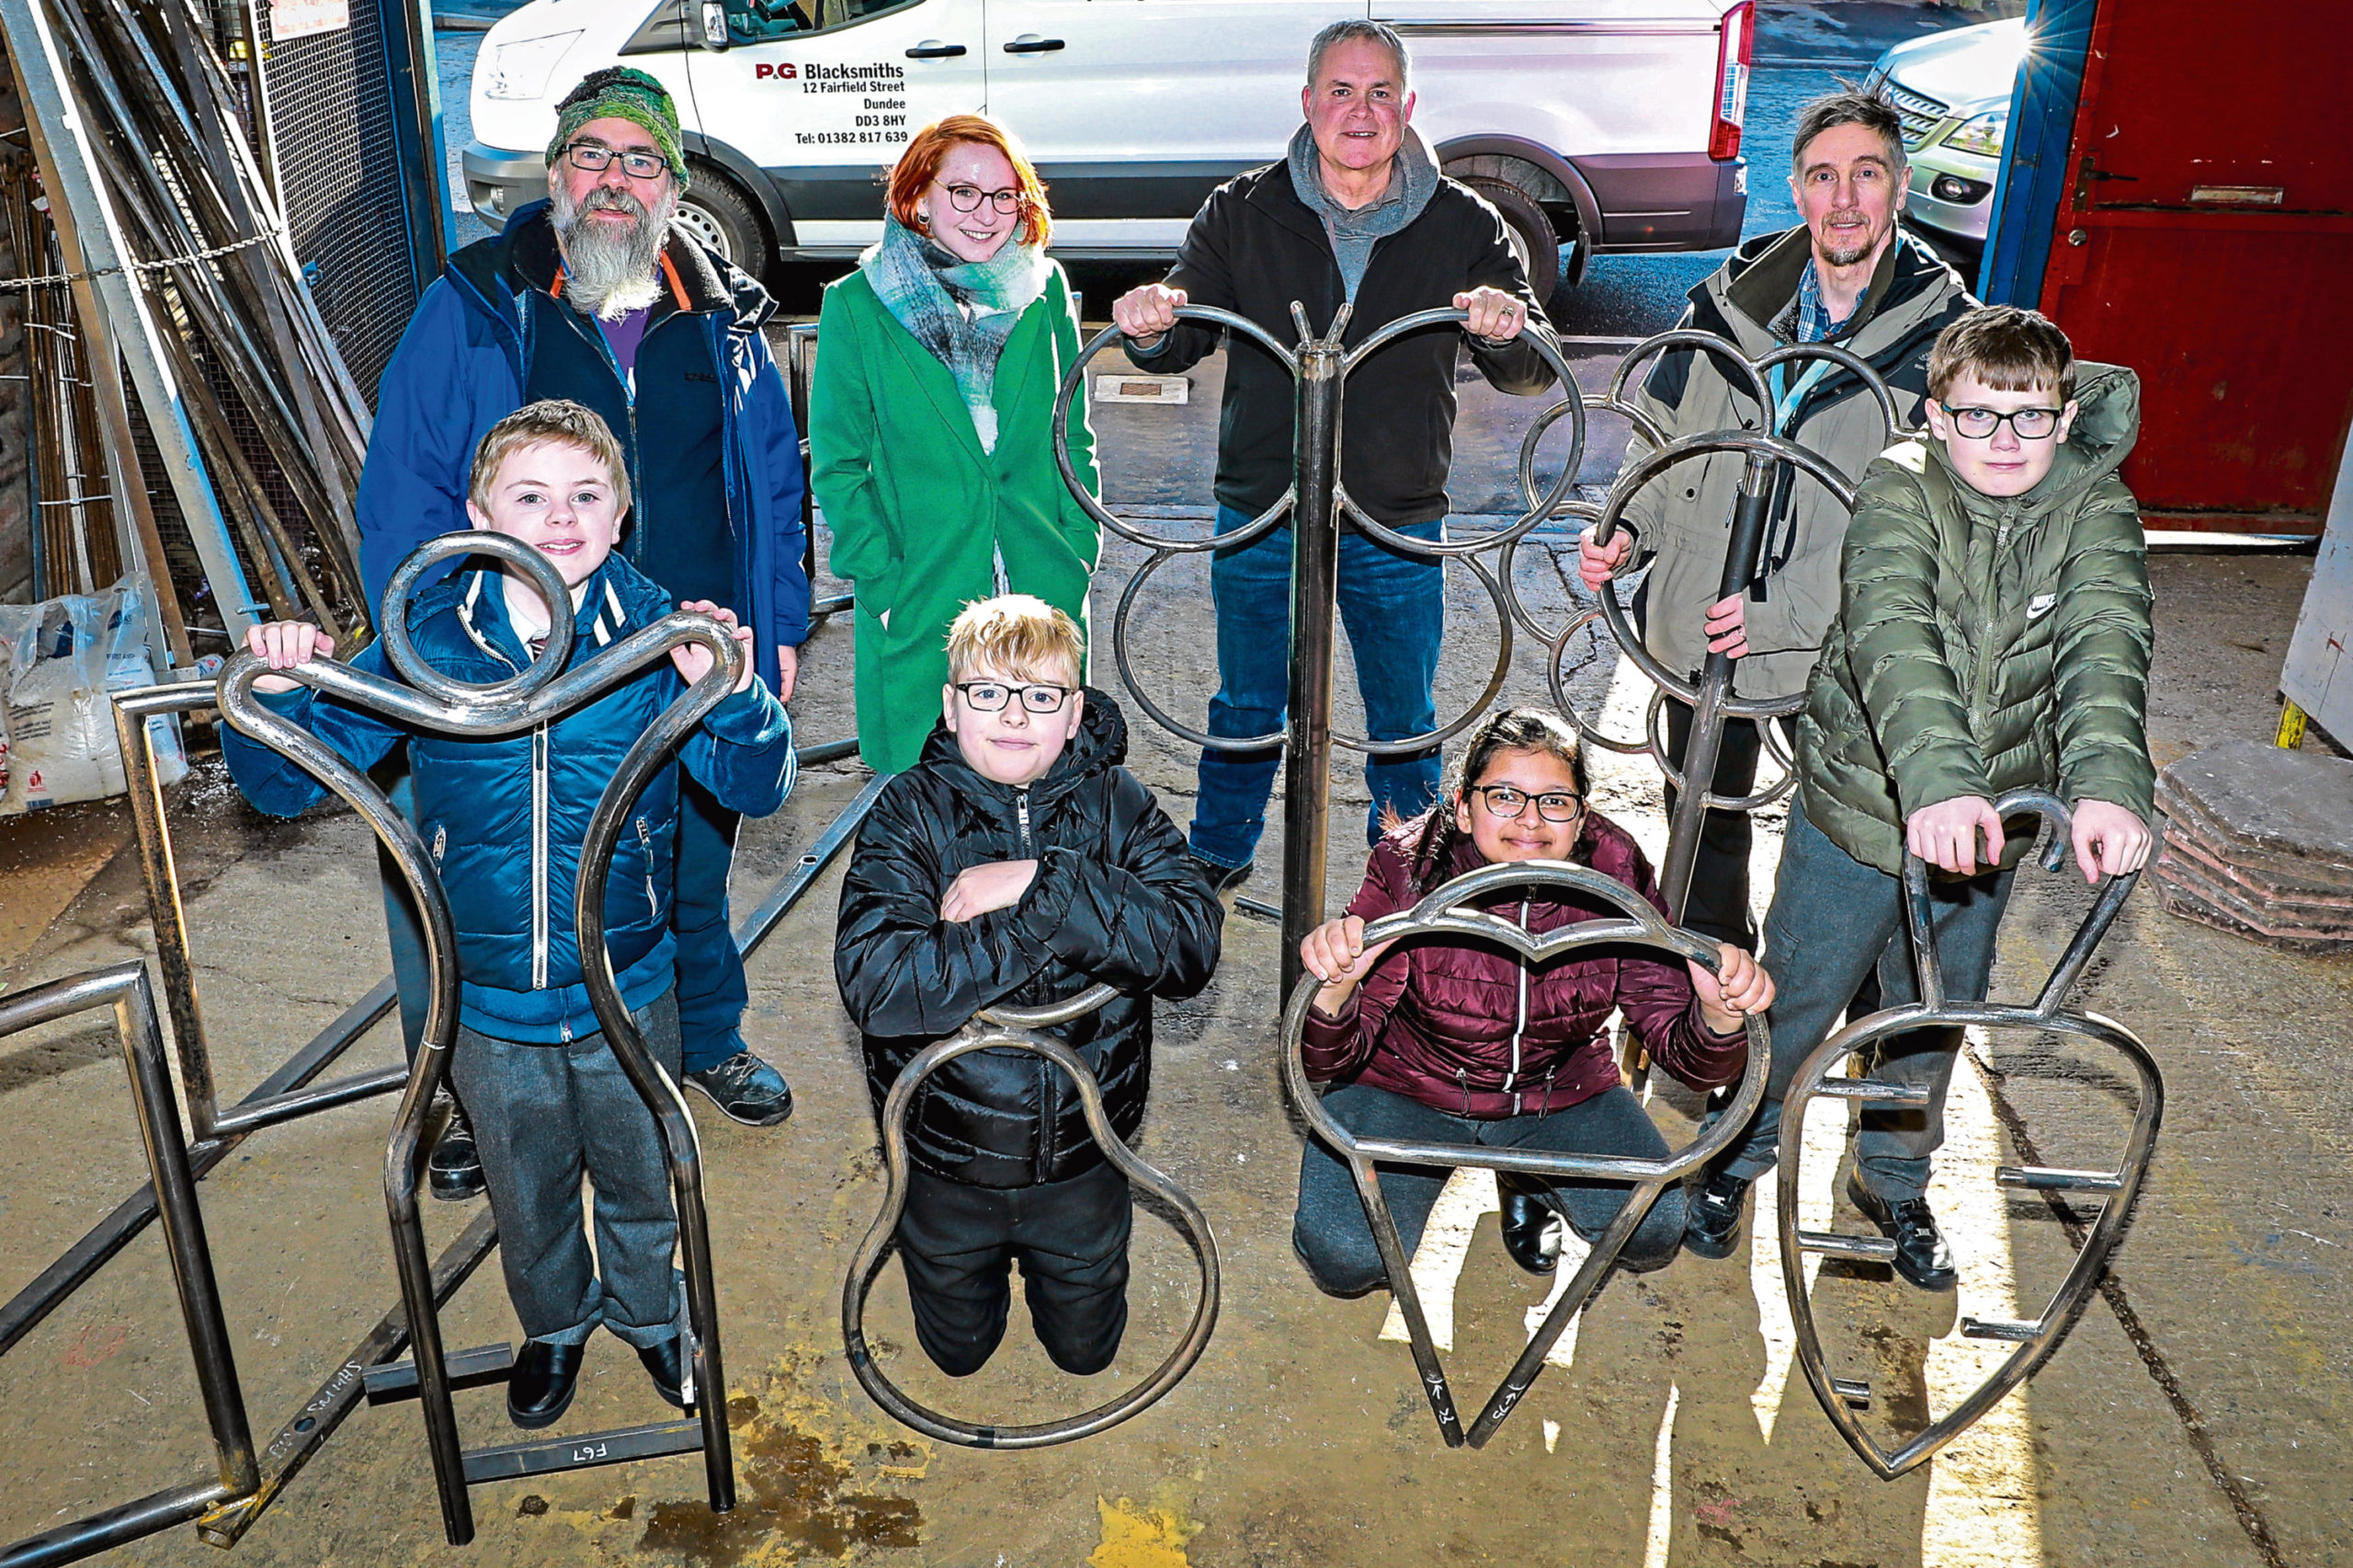 Picture shows (back) David, designer Kirsten MacGregor-Manzi, Gary Carling of P&G Blacksmiths and John Whyman of Dundee City Council. Front: Drew Marr and Alfie Park (both 11), Amina Nassir, 12, and Finlay Smith, 11, from P7B at Blackness Primary who designed the cycle racks.